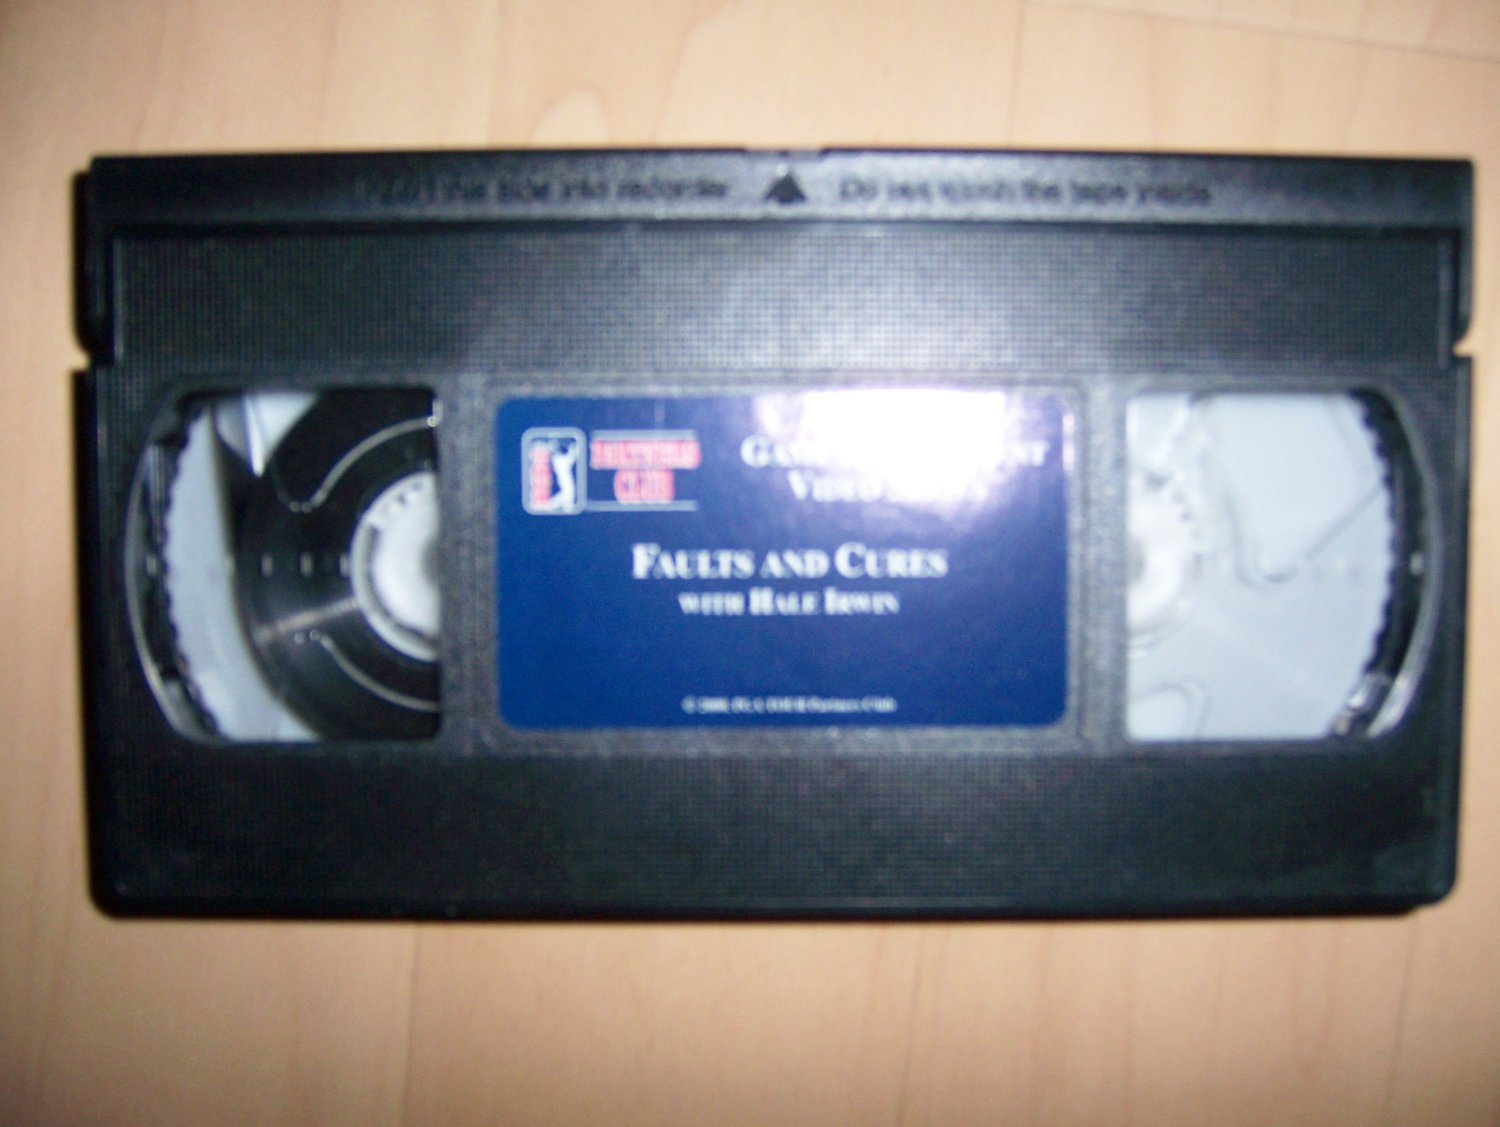 VHS PGA Partners Club Game Improvement Faults & Cures BNK770